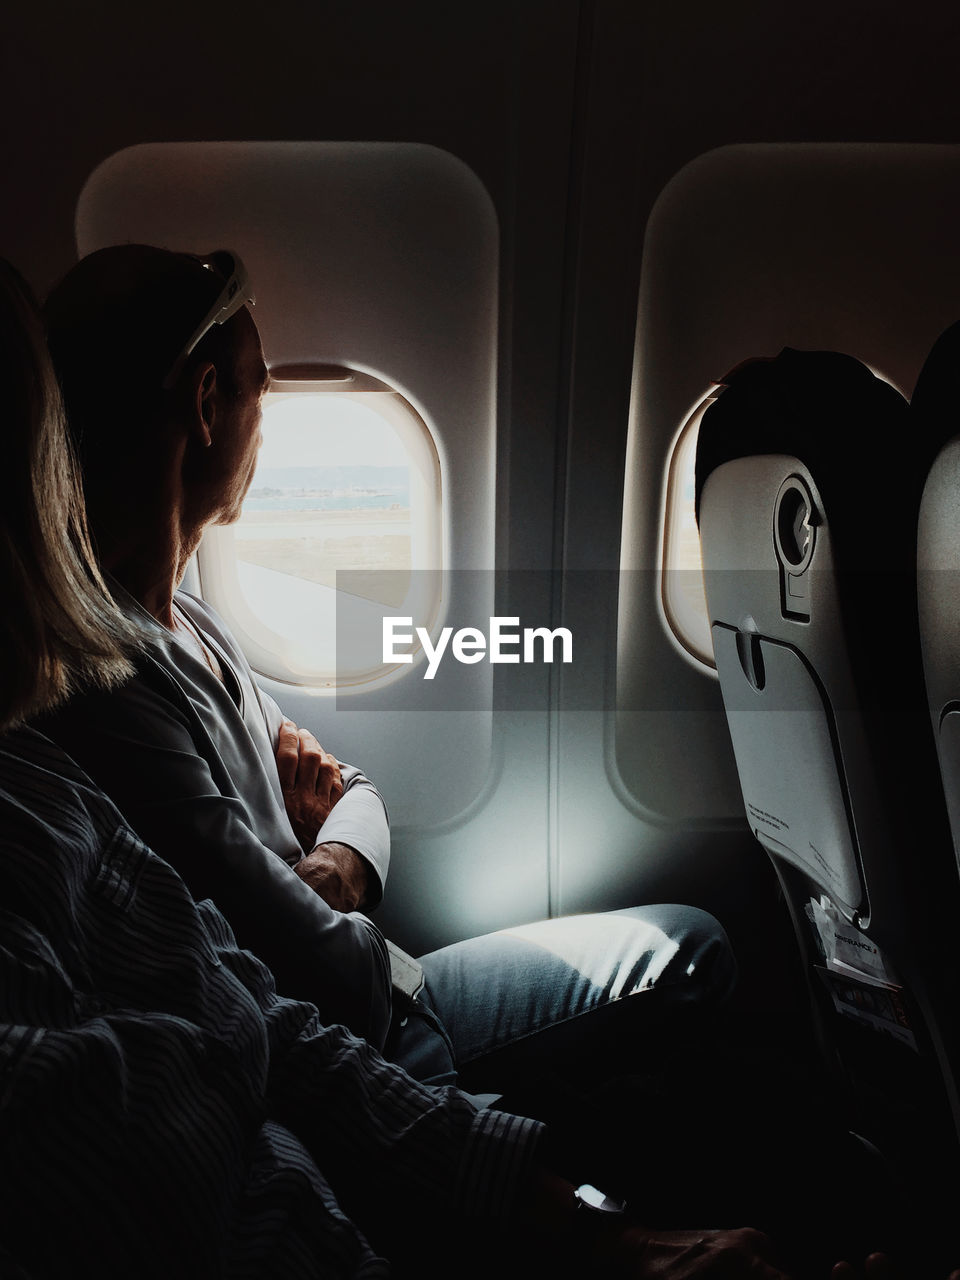 mode of transportation, vehicle interior, transportation, air vehicle, sitting, airplane, real people, travel, window, vehicle seat, women, seat, journey, casual clothing, public transportation, adult, one person, lifestyles, leisure activity, three quarter length, hairstyle, outdoors, airplane seat